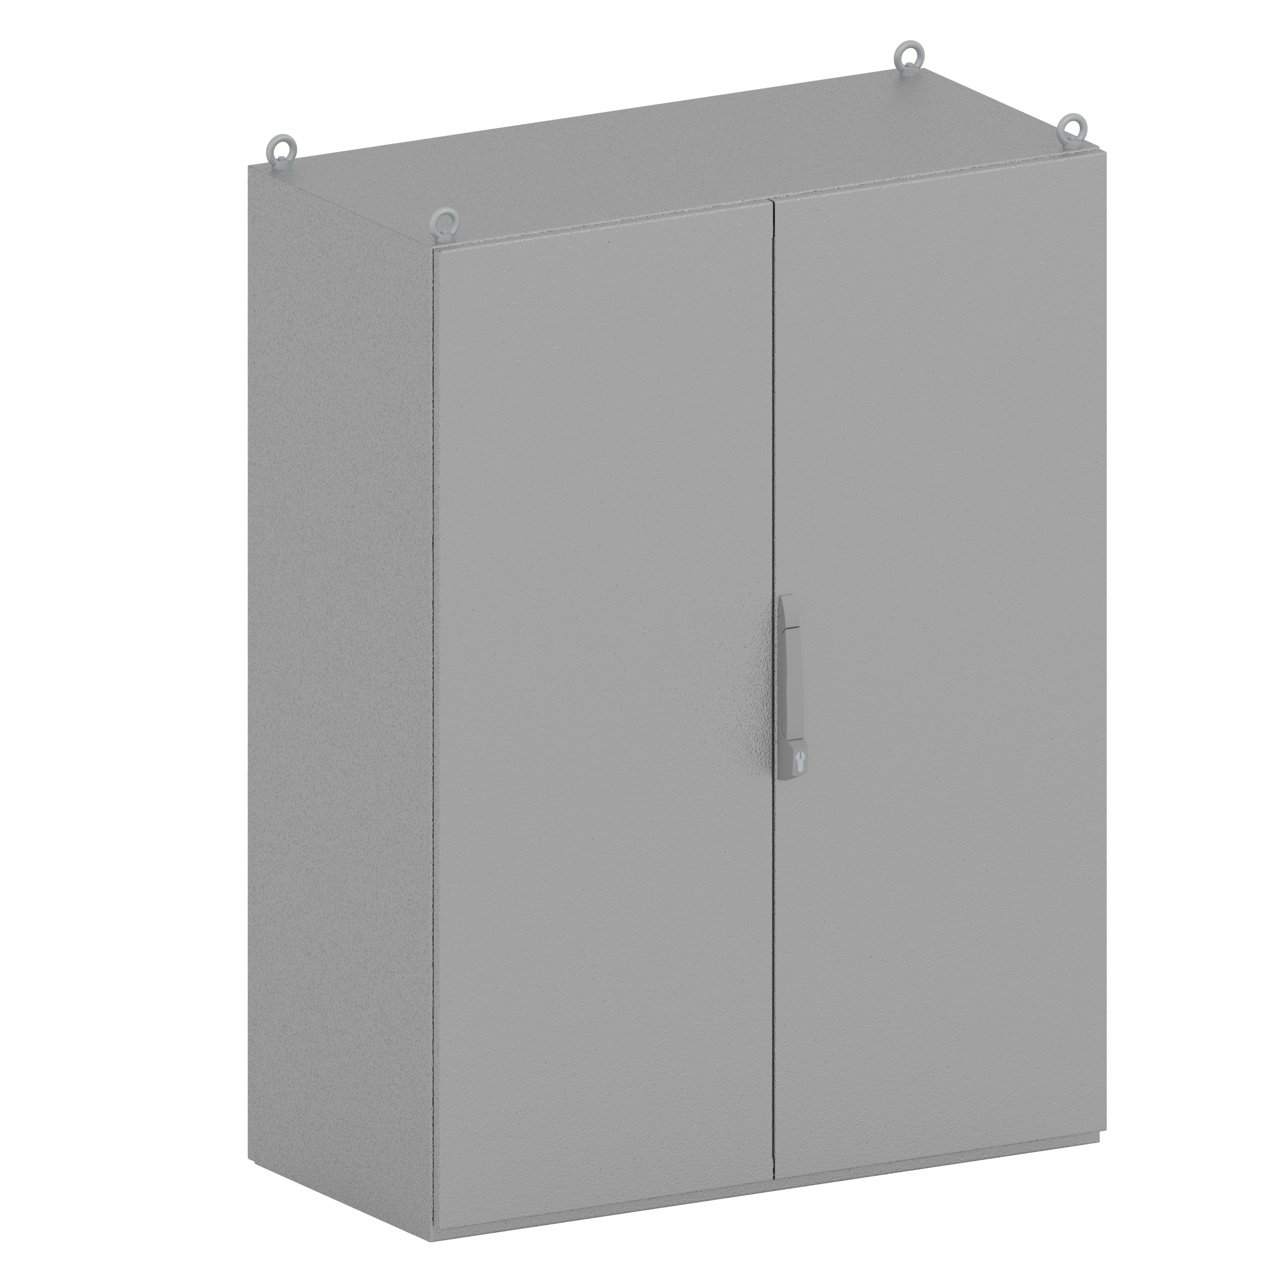 The KAPPA two-door switchgear enclosure by SencoPB has a 300kg maximum load capacity and possibility to customize materials.